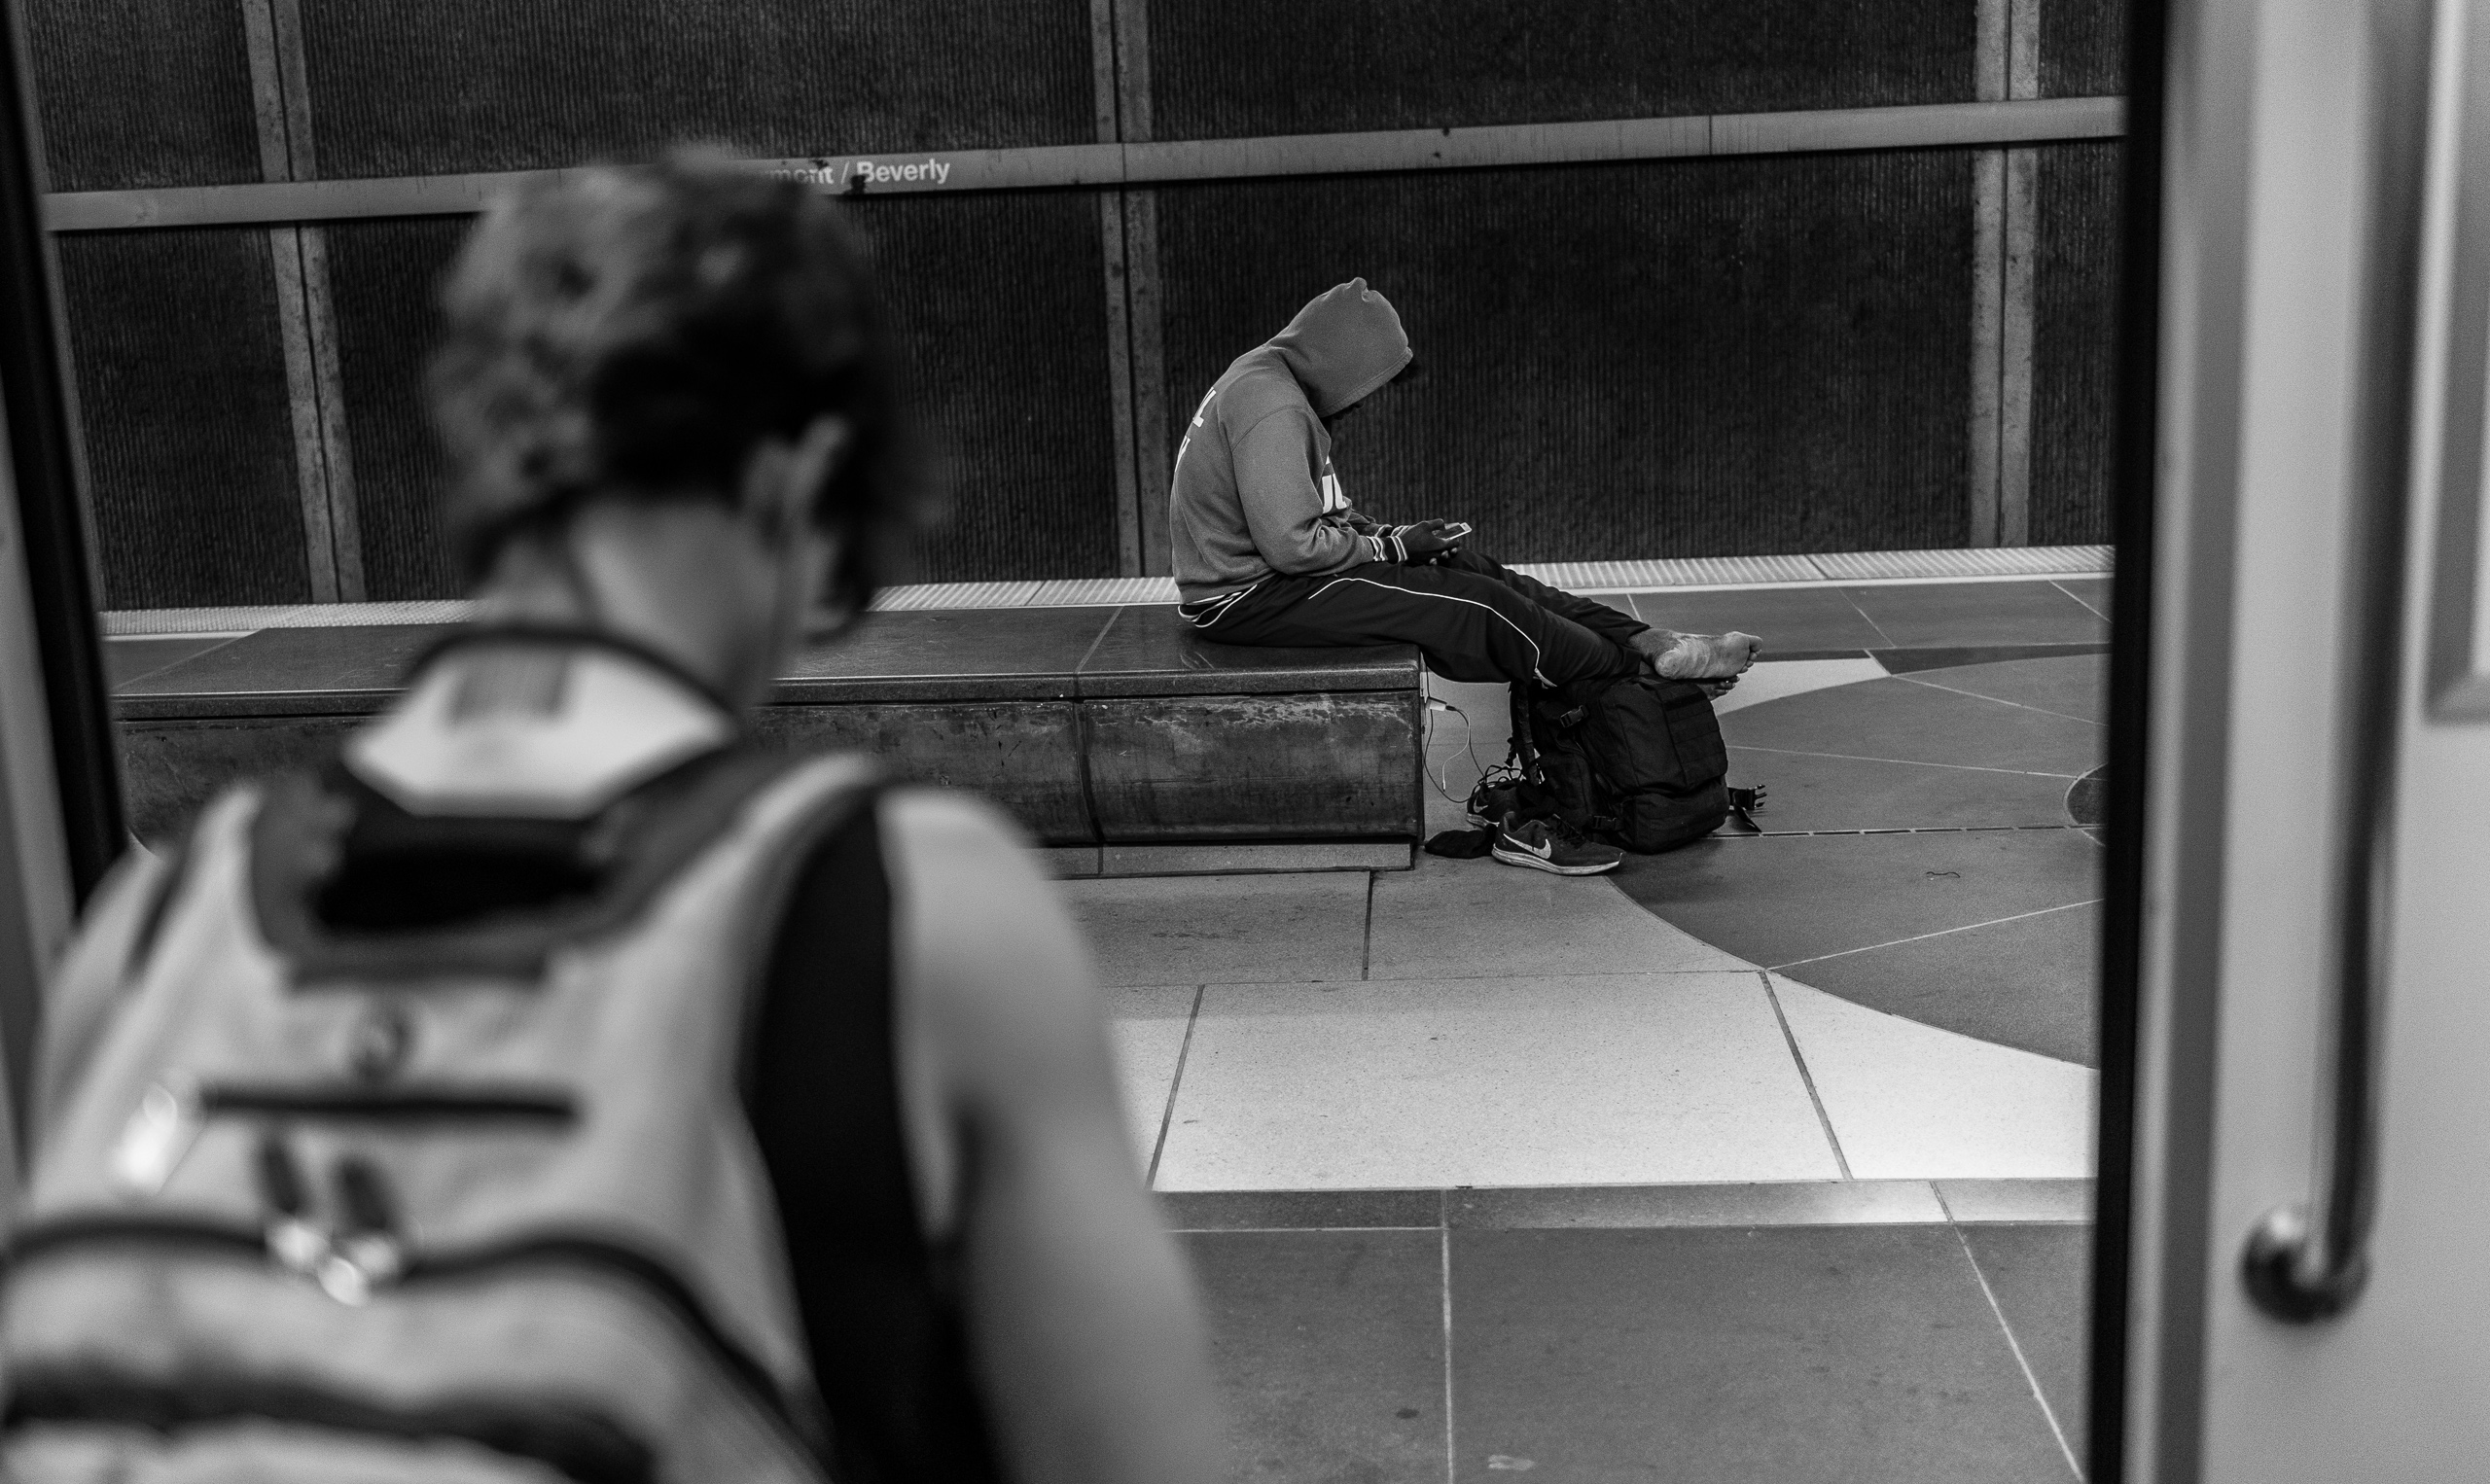 Photograph from a Metro Red LIne train car looking out to the Platform at Vermont/Beverly station. A guy sits on a concrete bench with his shoes off, his feet propped up on a bag, and his phone in hand and also charging with a cable